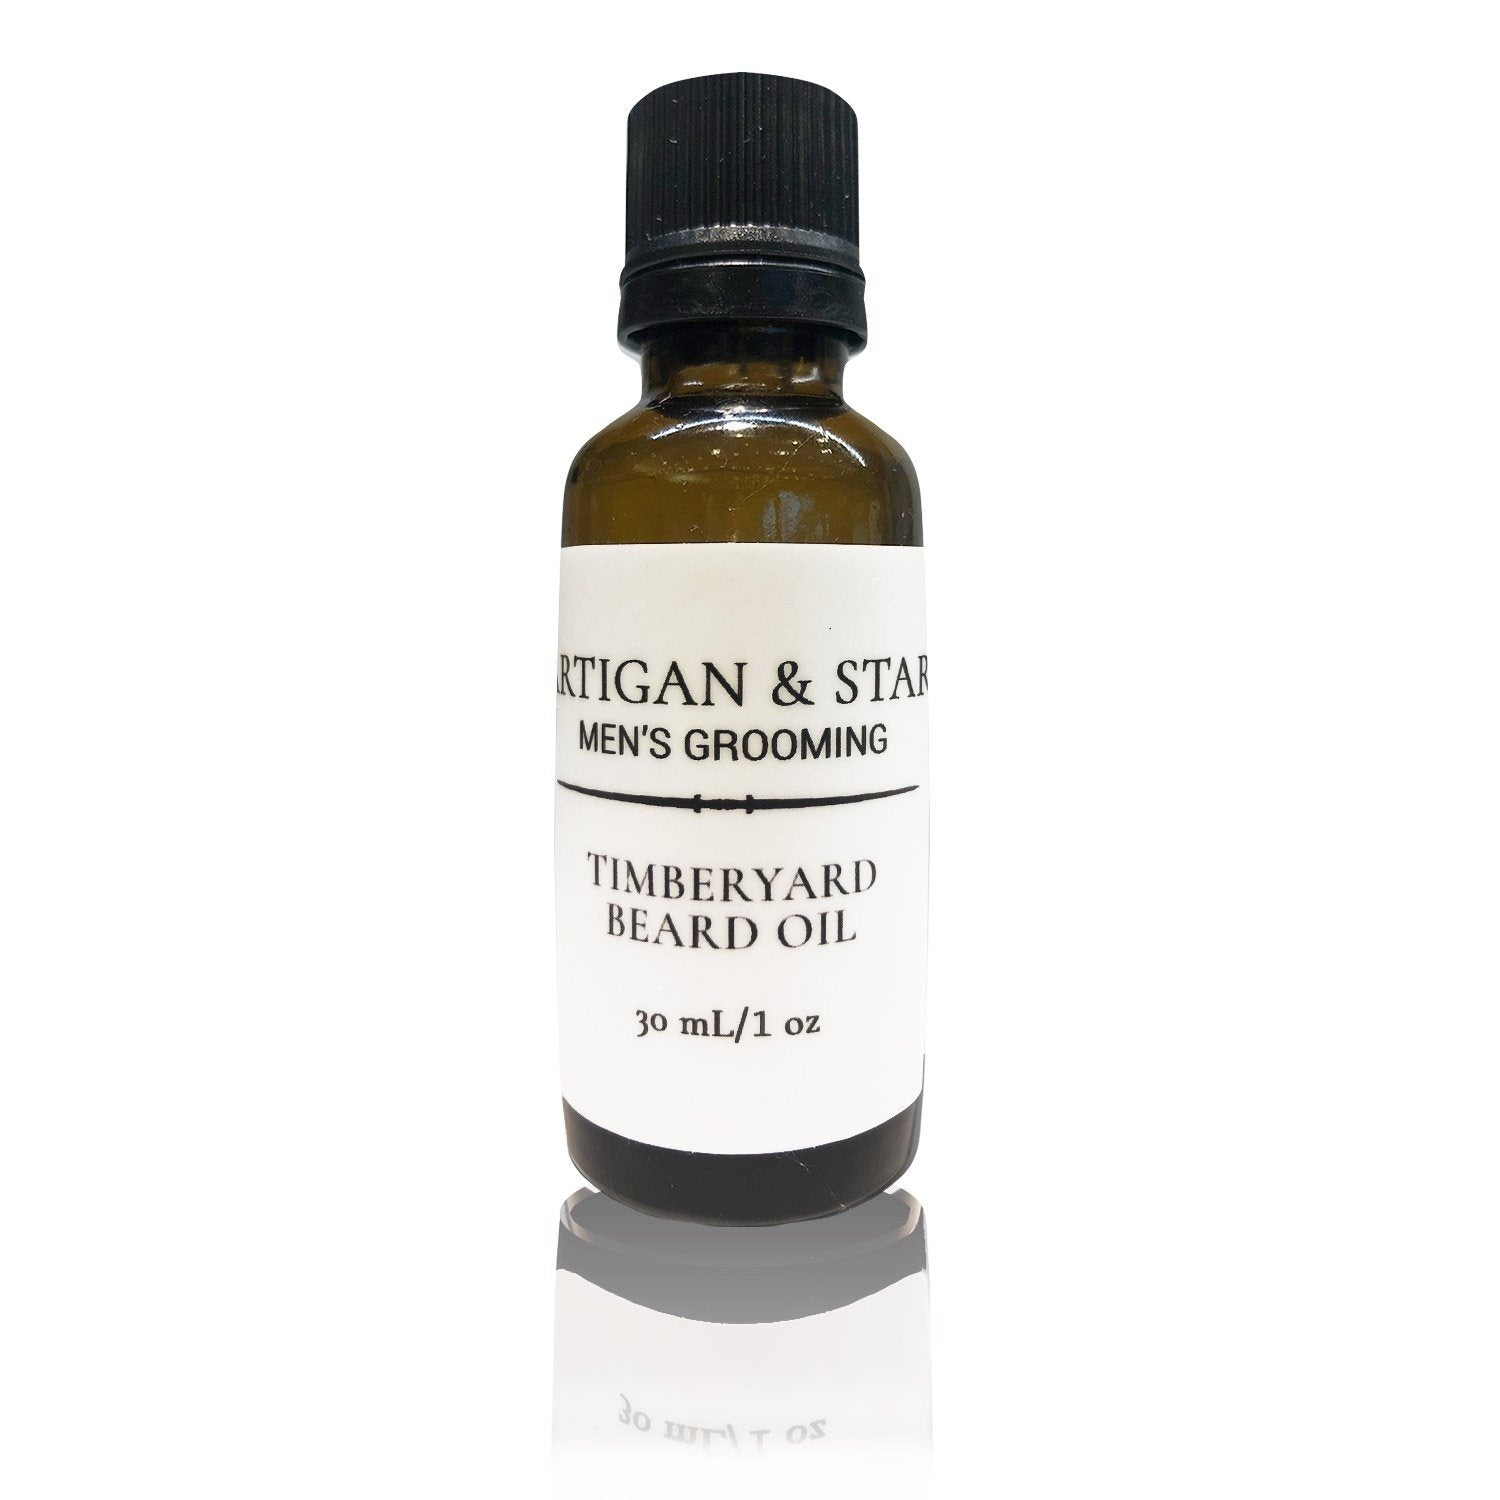 Bartigan & Stark Timberyard Beard Oil Grooming Supplies Bartigan & Stark